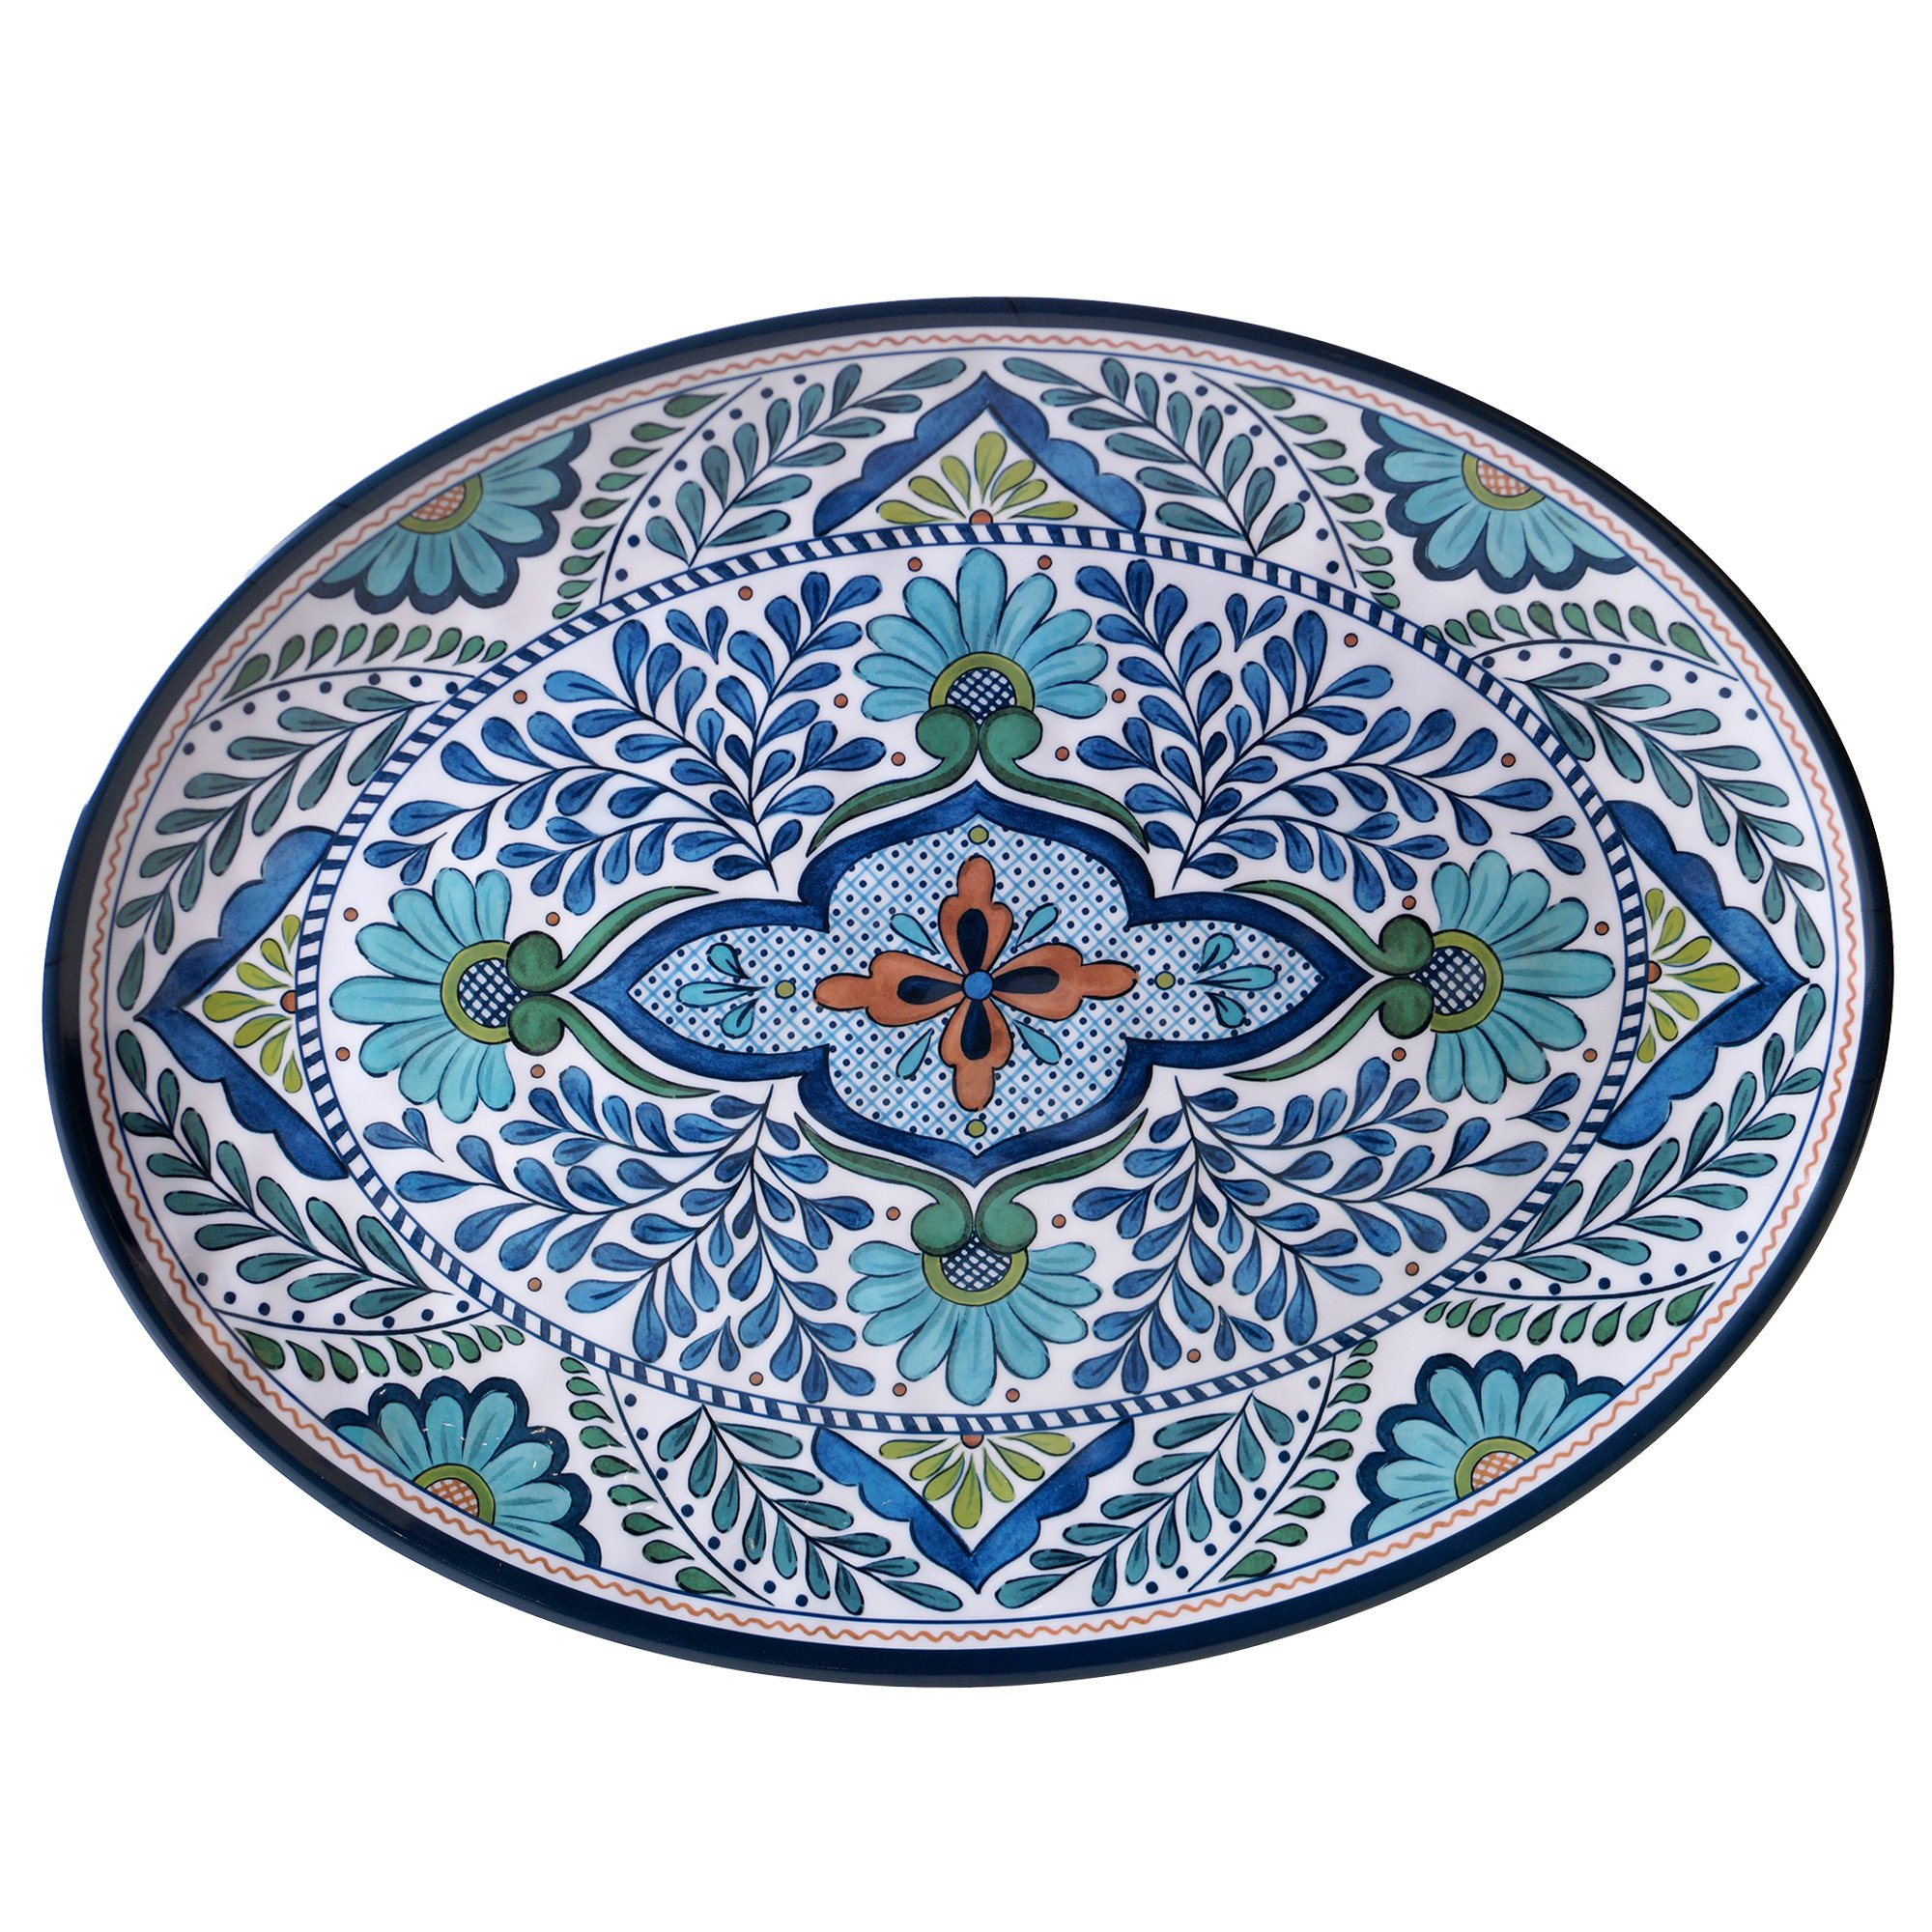 Certified International Talavera Melamine 18'' x 13.5'' Oval Platter, Multicolor